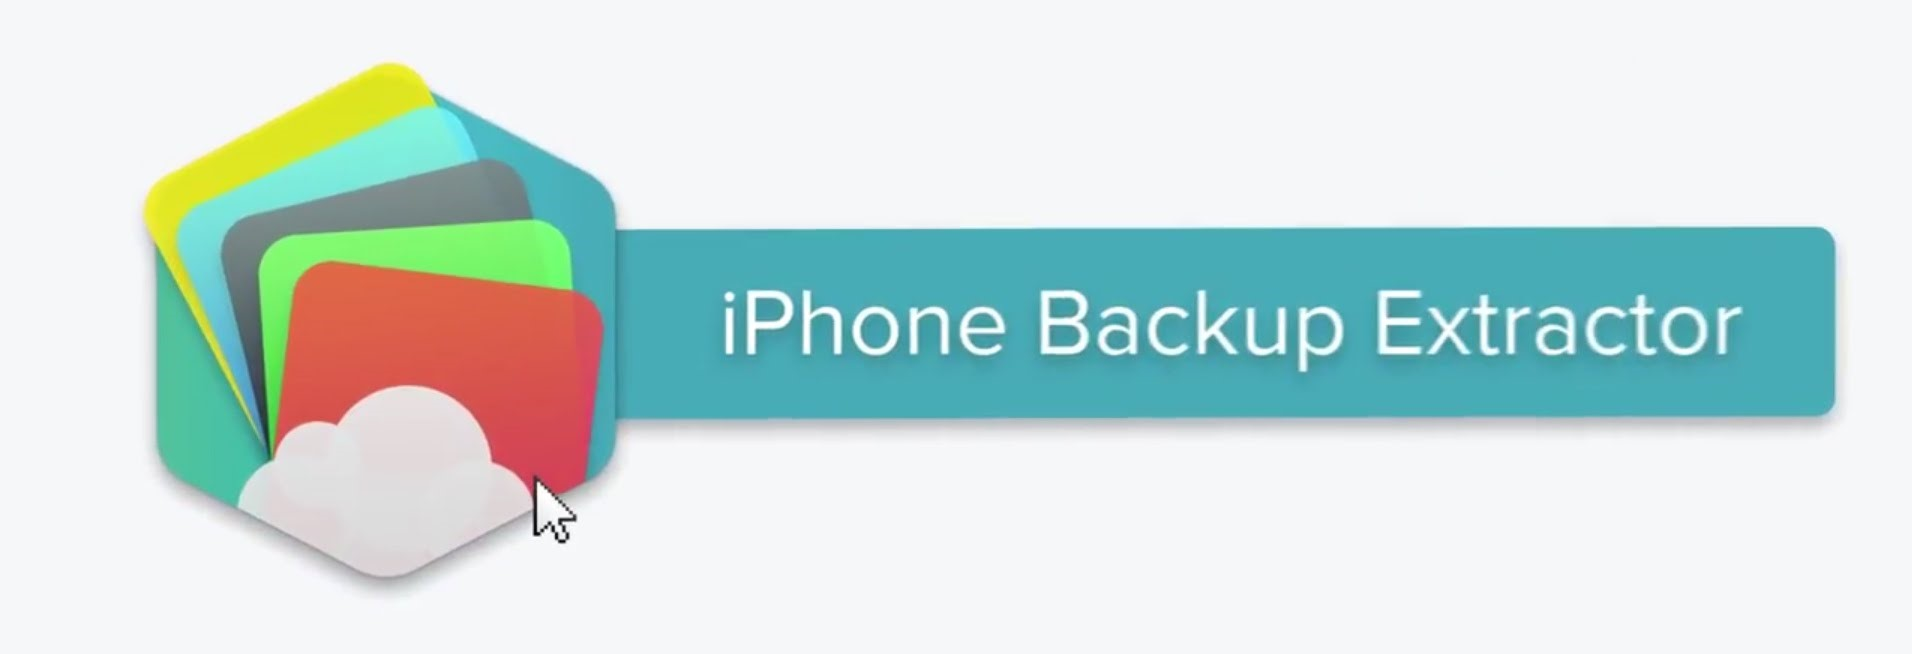 iPhone Backup Extractor 7.6.5.1514 Crack Full Keygen Torrent